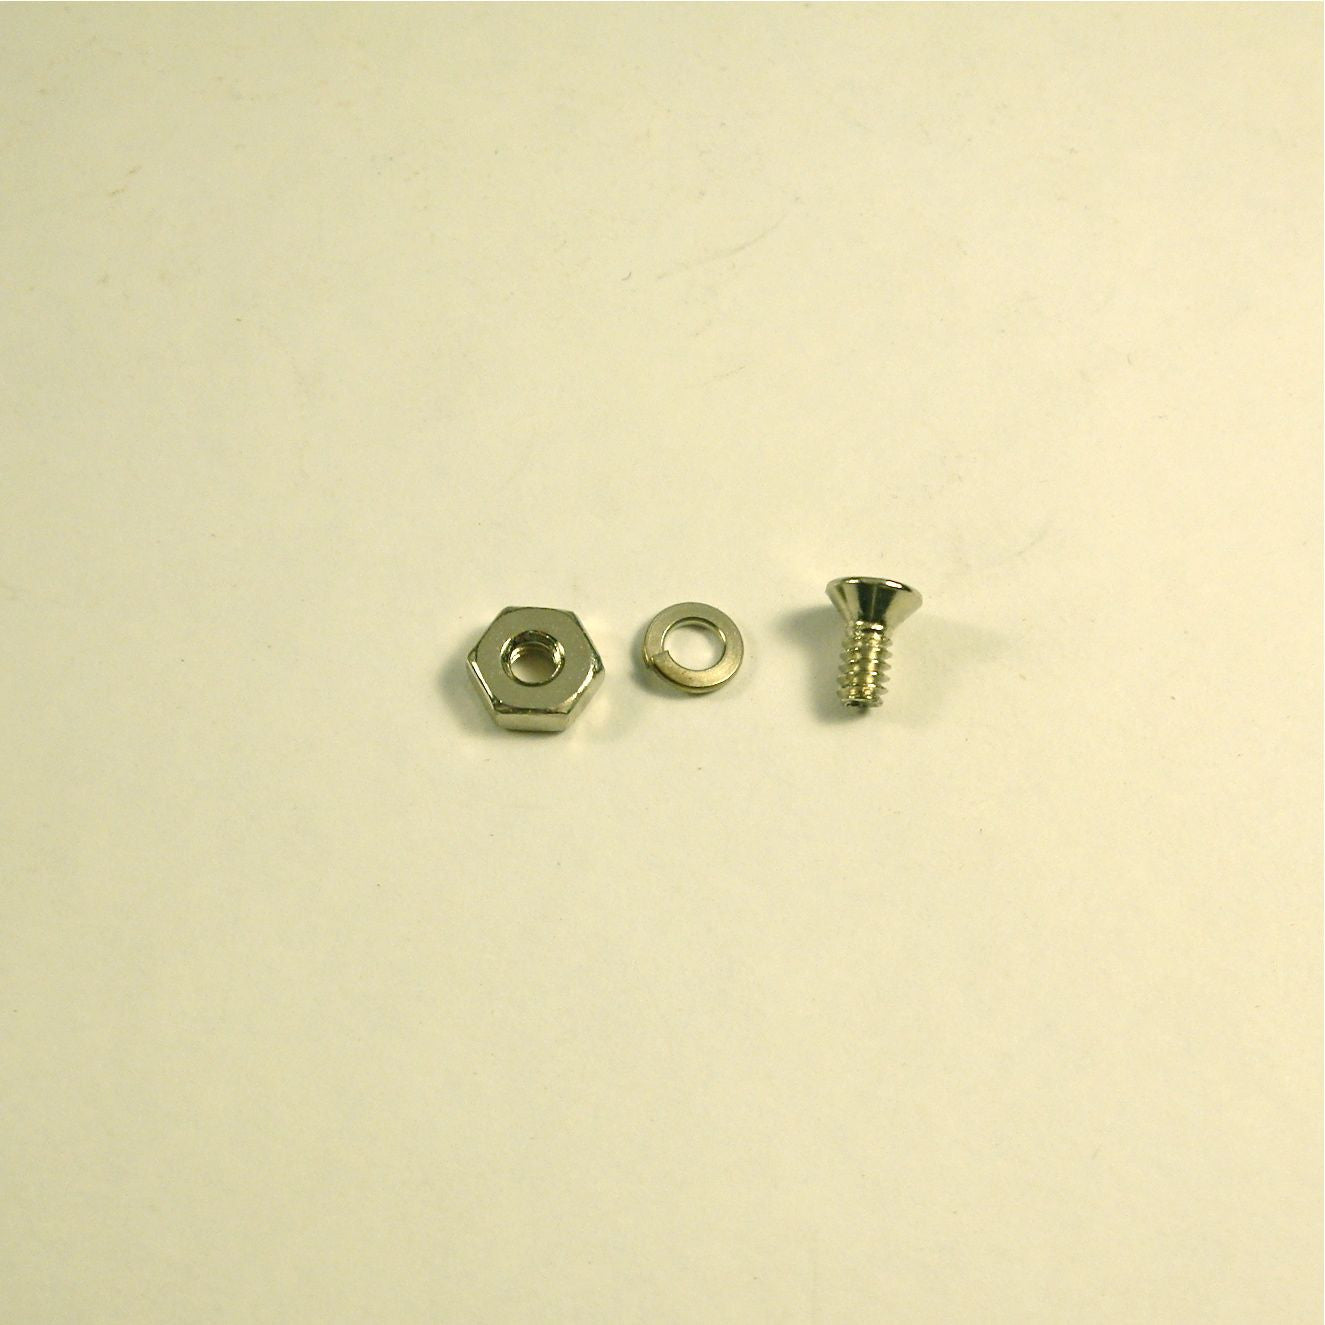 Screw kit for pickguard bracket